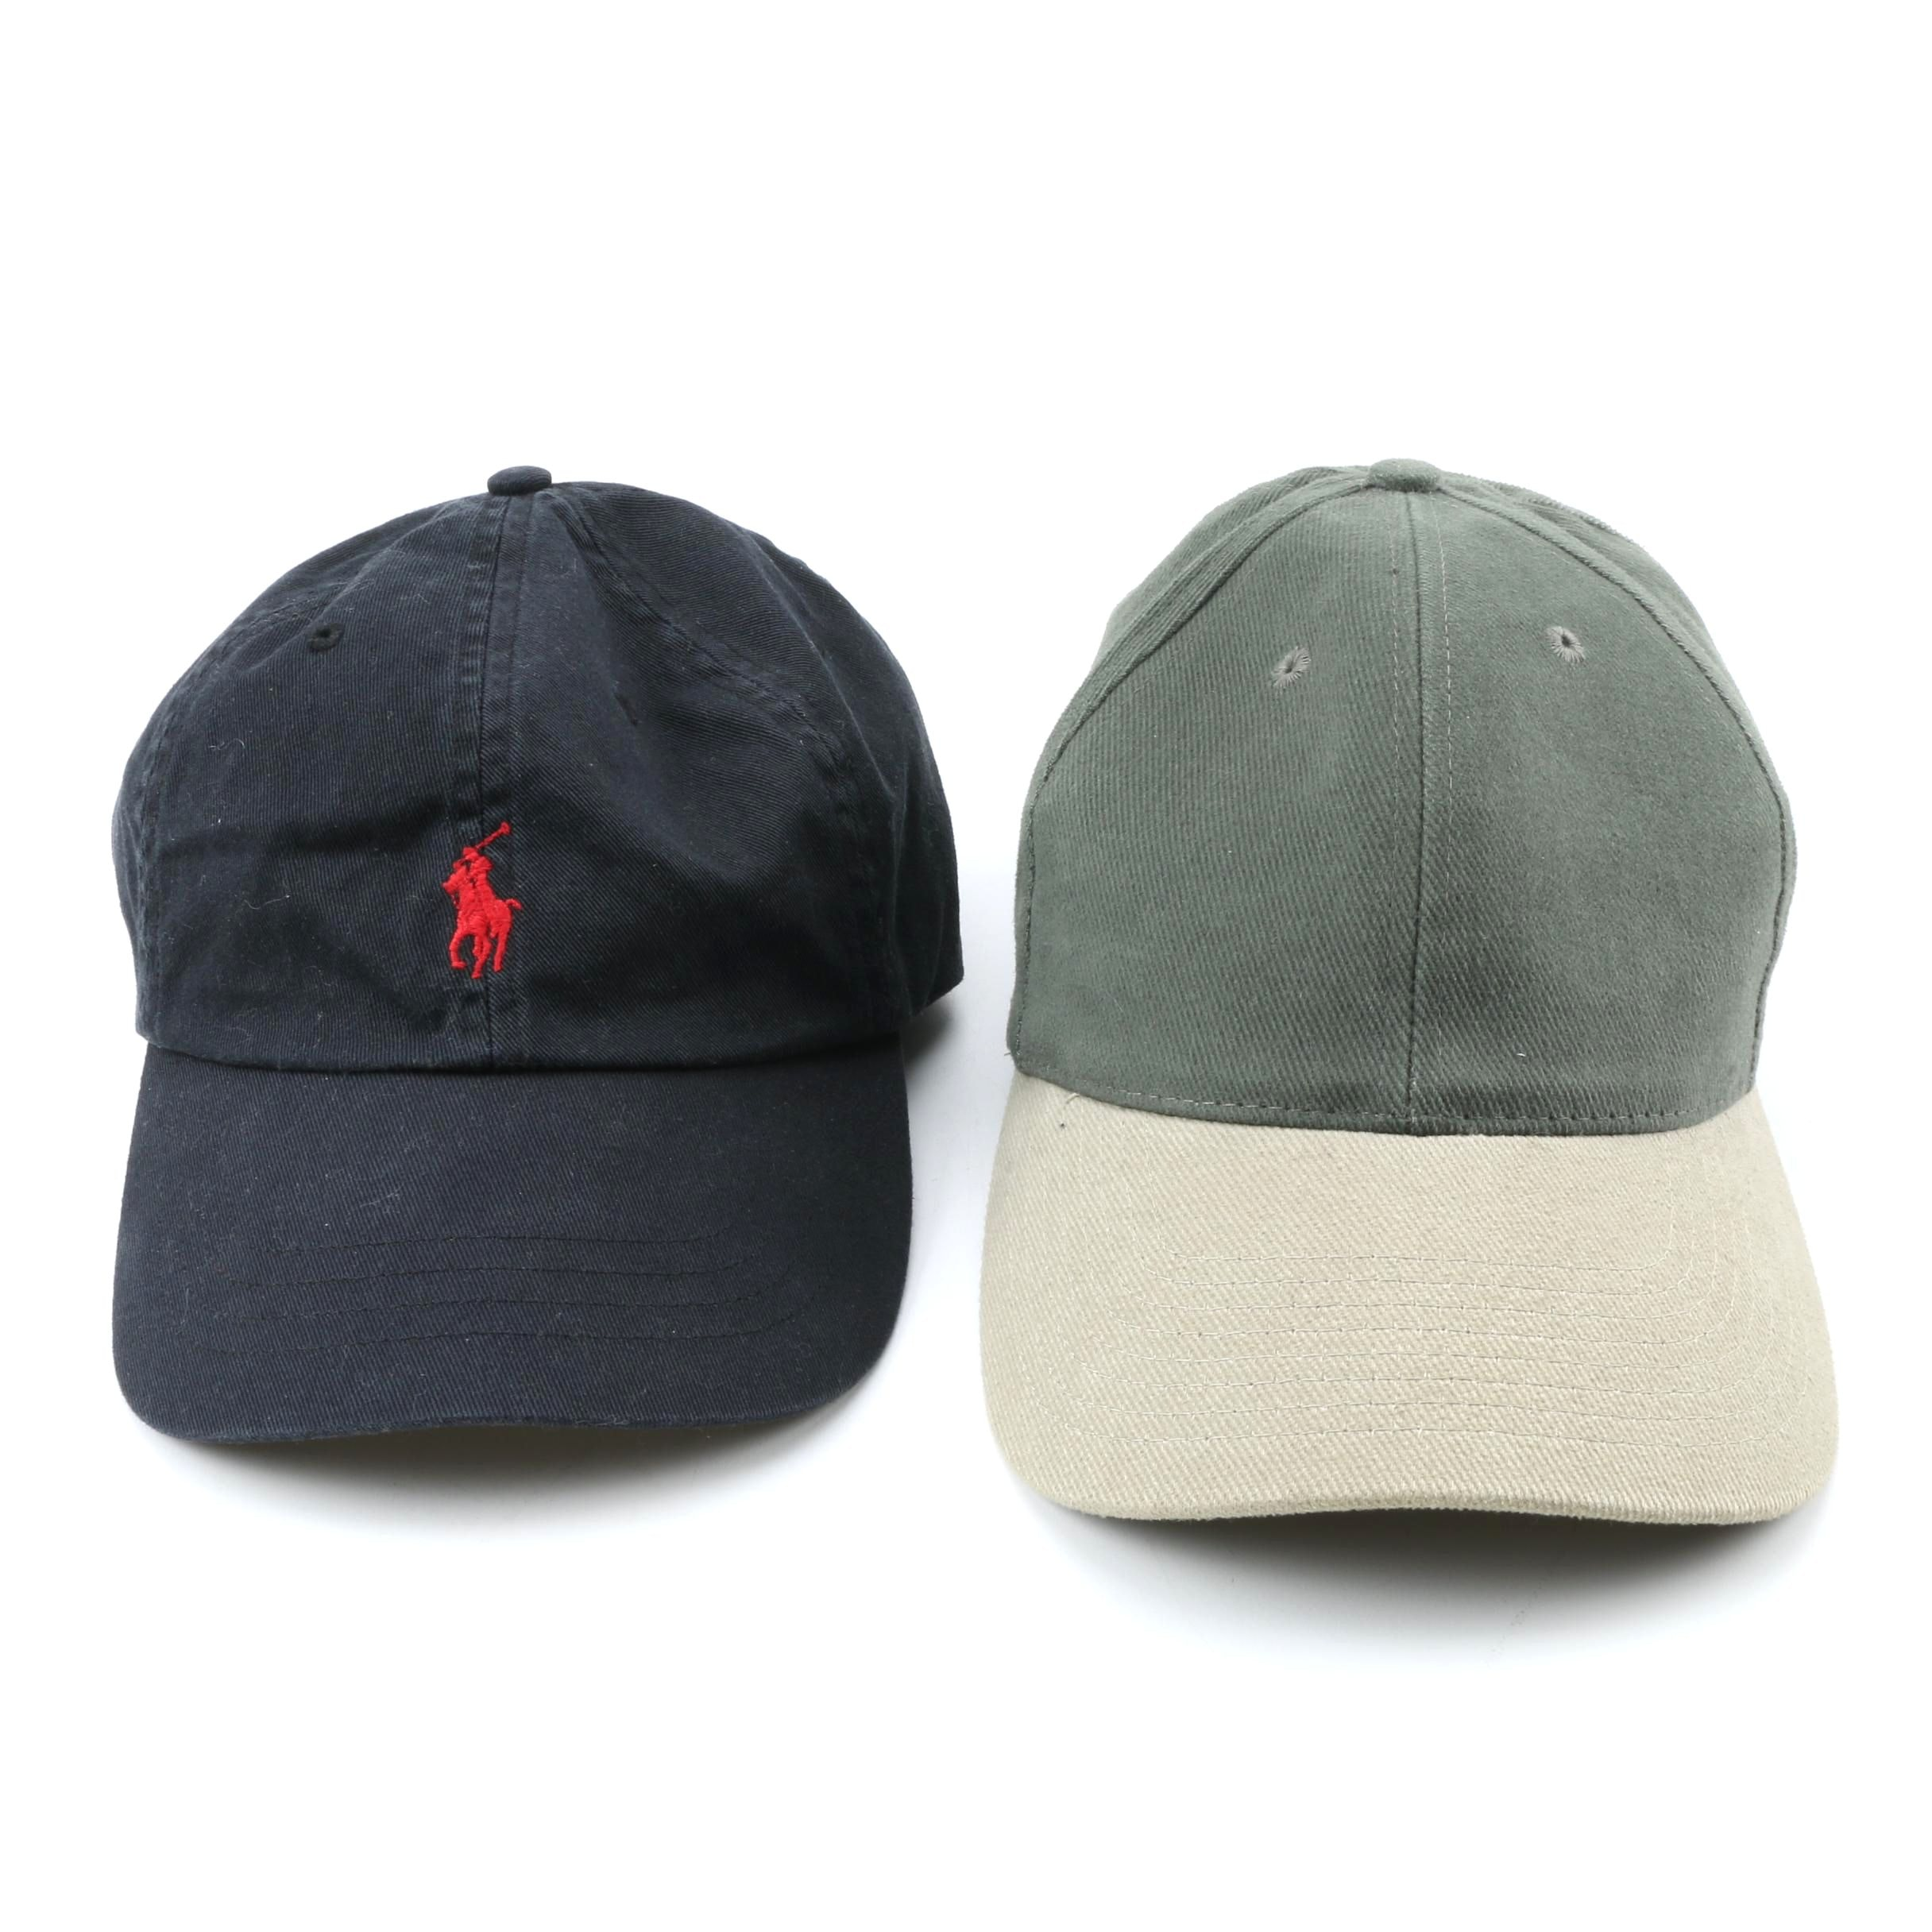 Baseball Caps Including Polo by Ralph Lauren